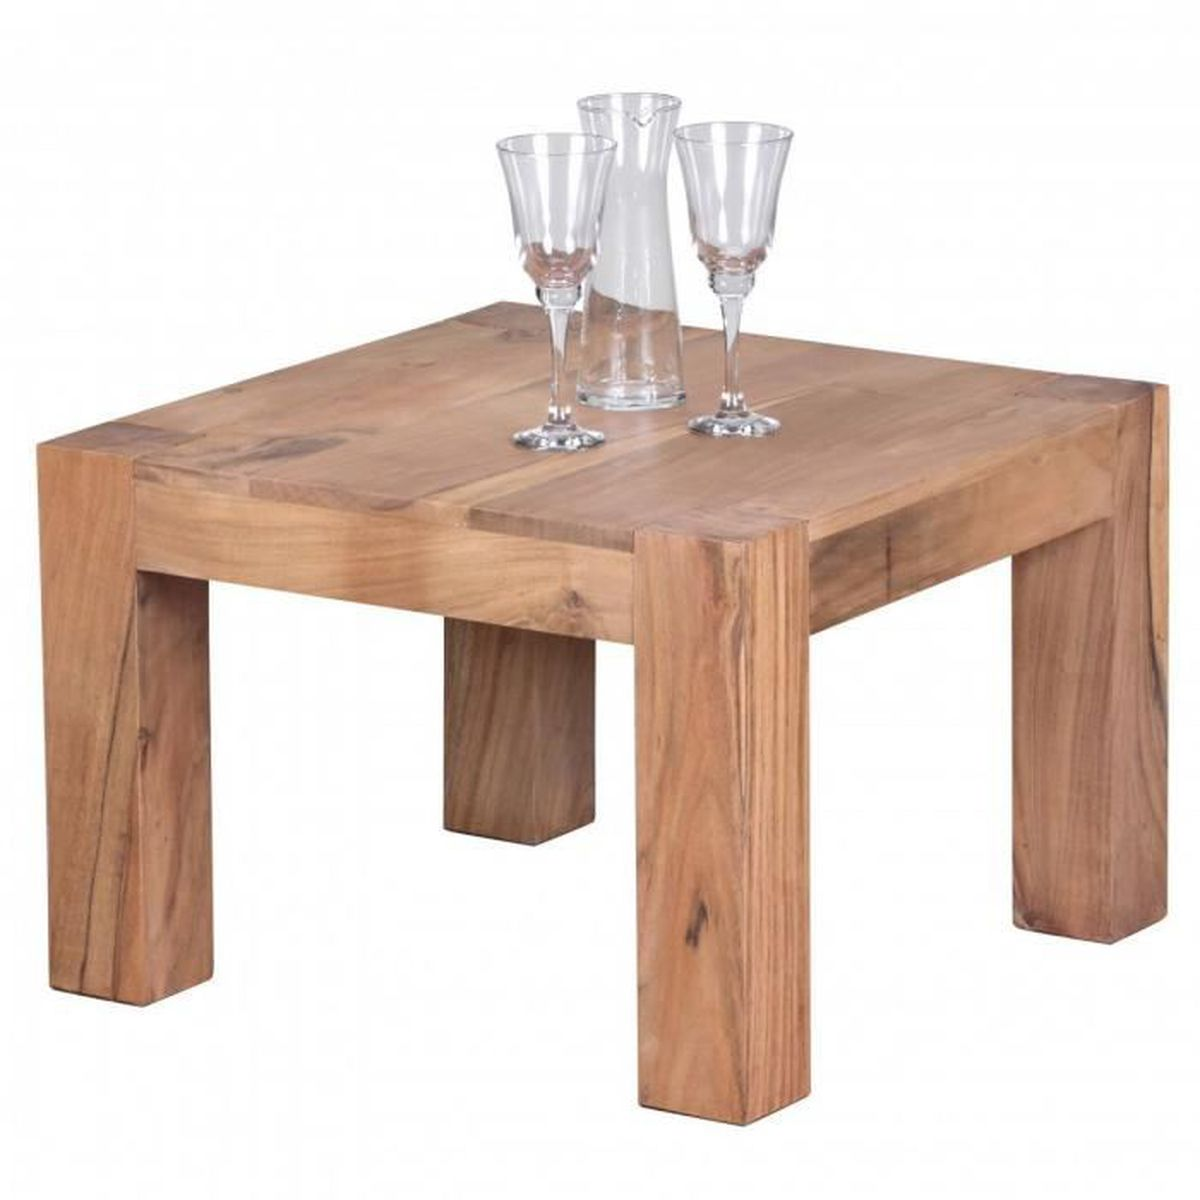 Table basse en bois massif acacia 60 cm de large table de for Meuble de 60 cm de large